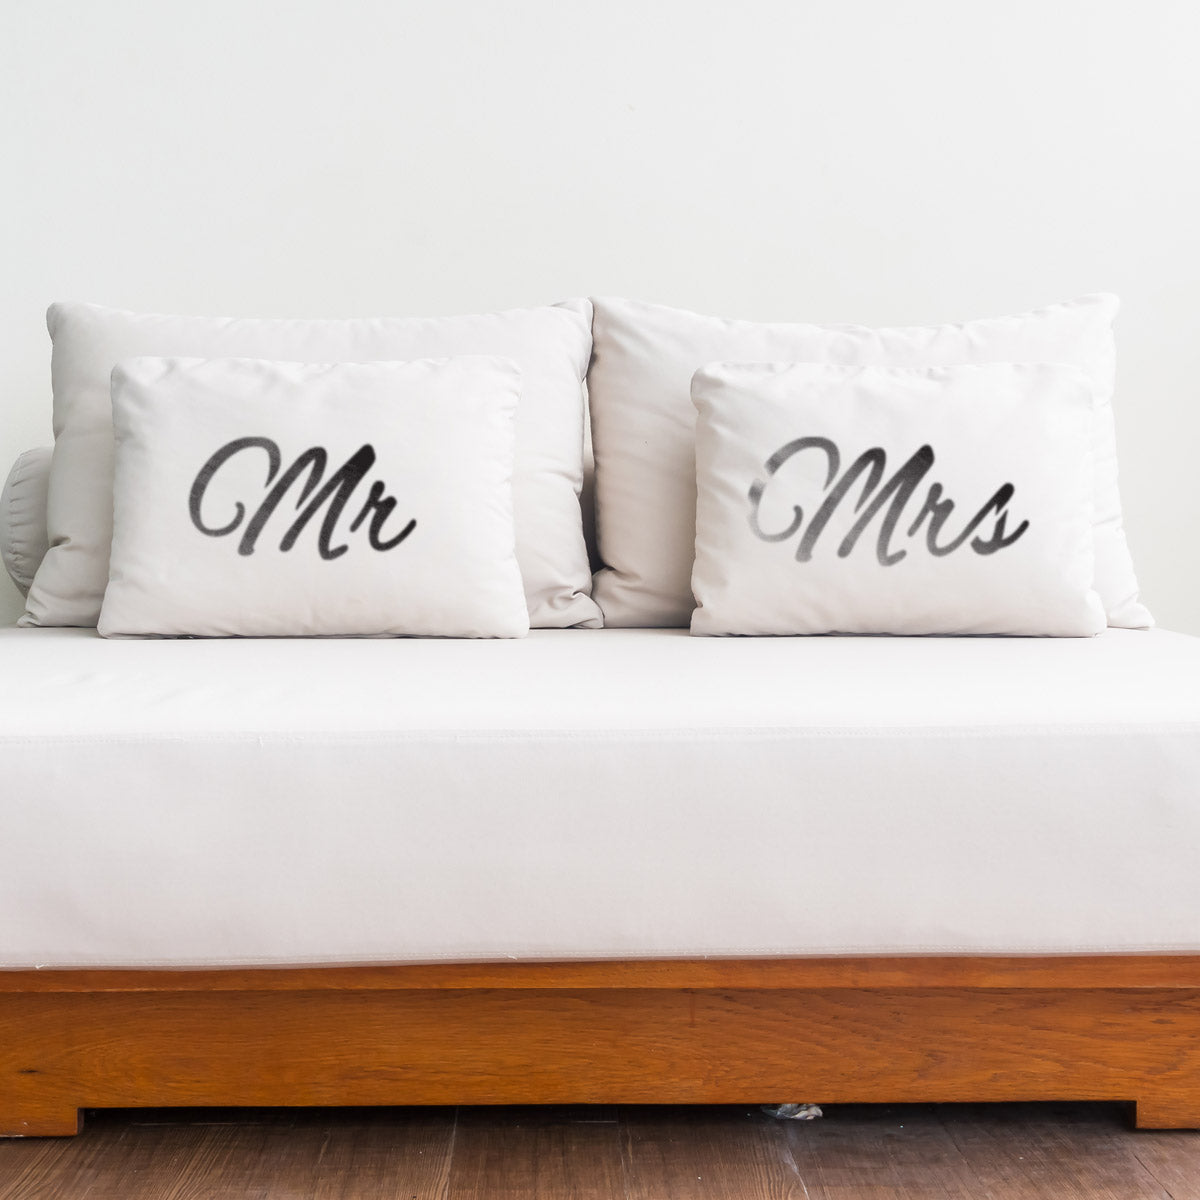 CraftStar Large Mr & Mrs Words Stencil in bedroom